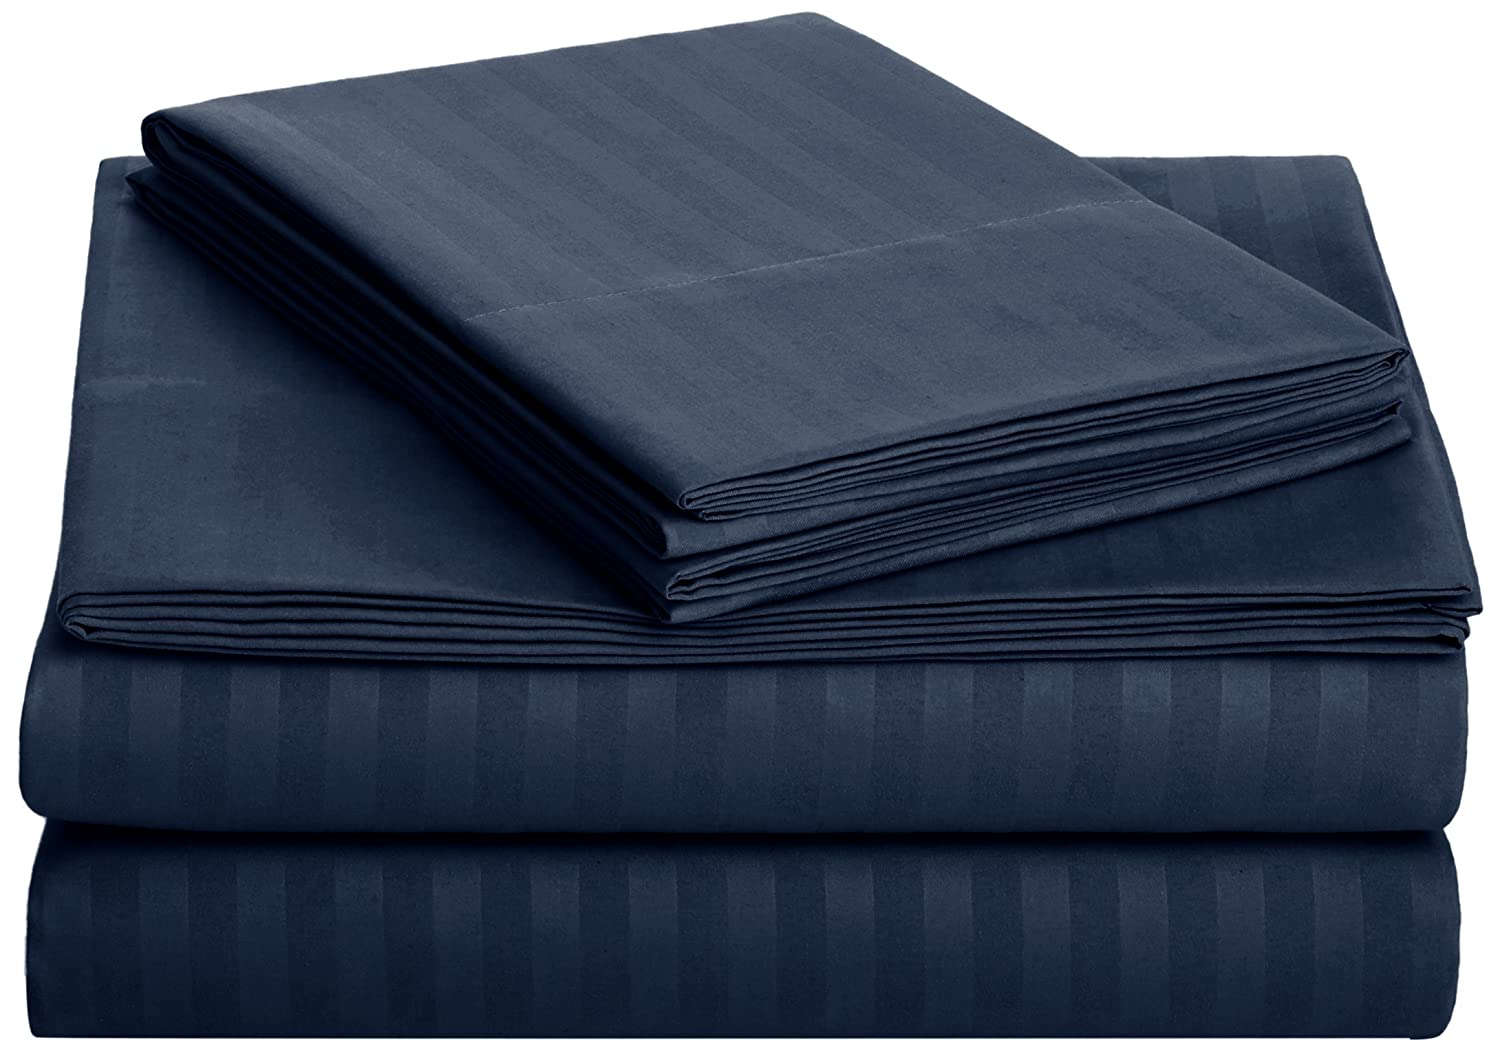 AmazonBasics Deluxe Striped Microfiber Bed Sheet Set - King, Navy Blue